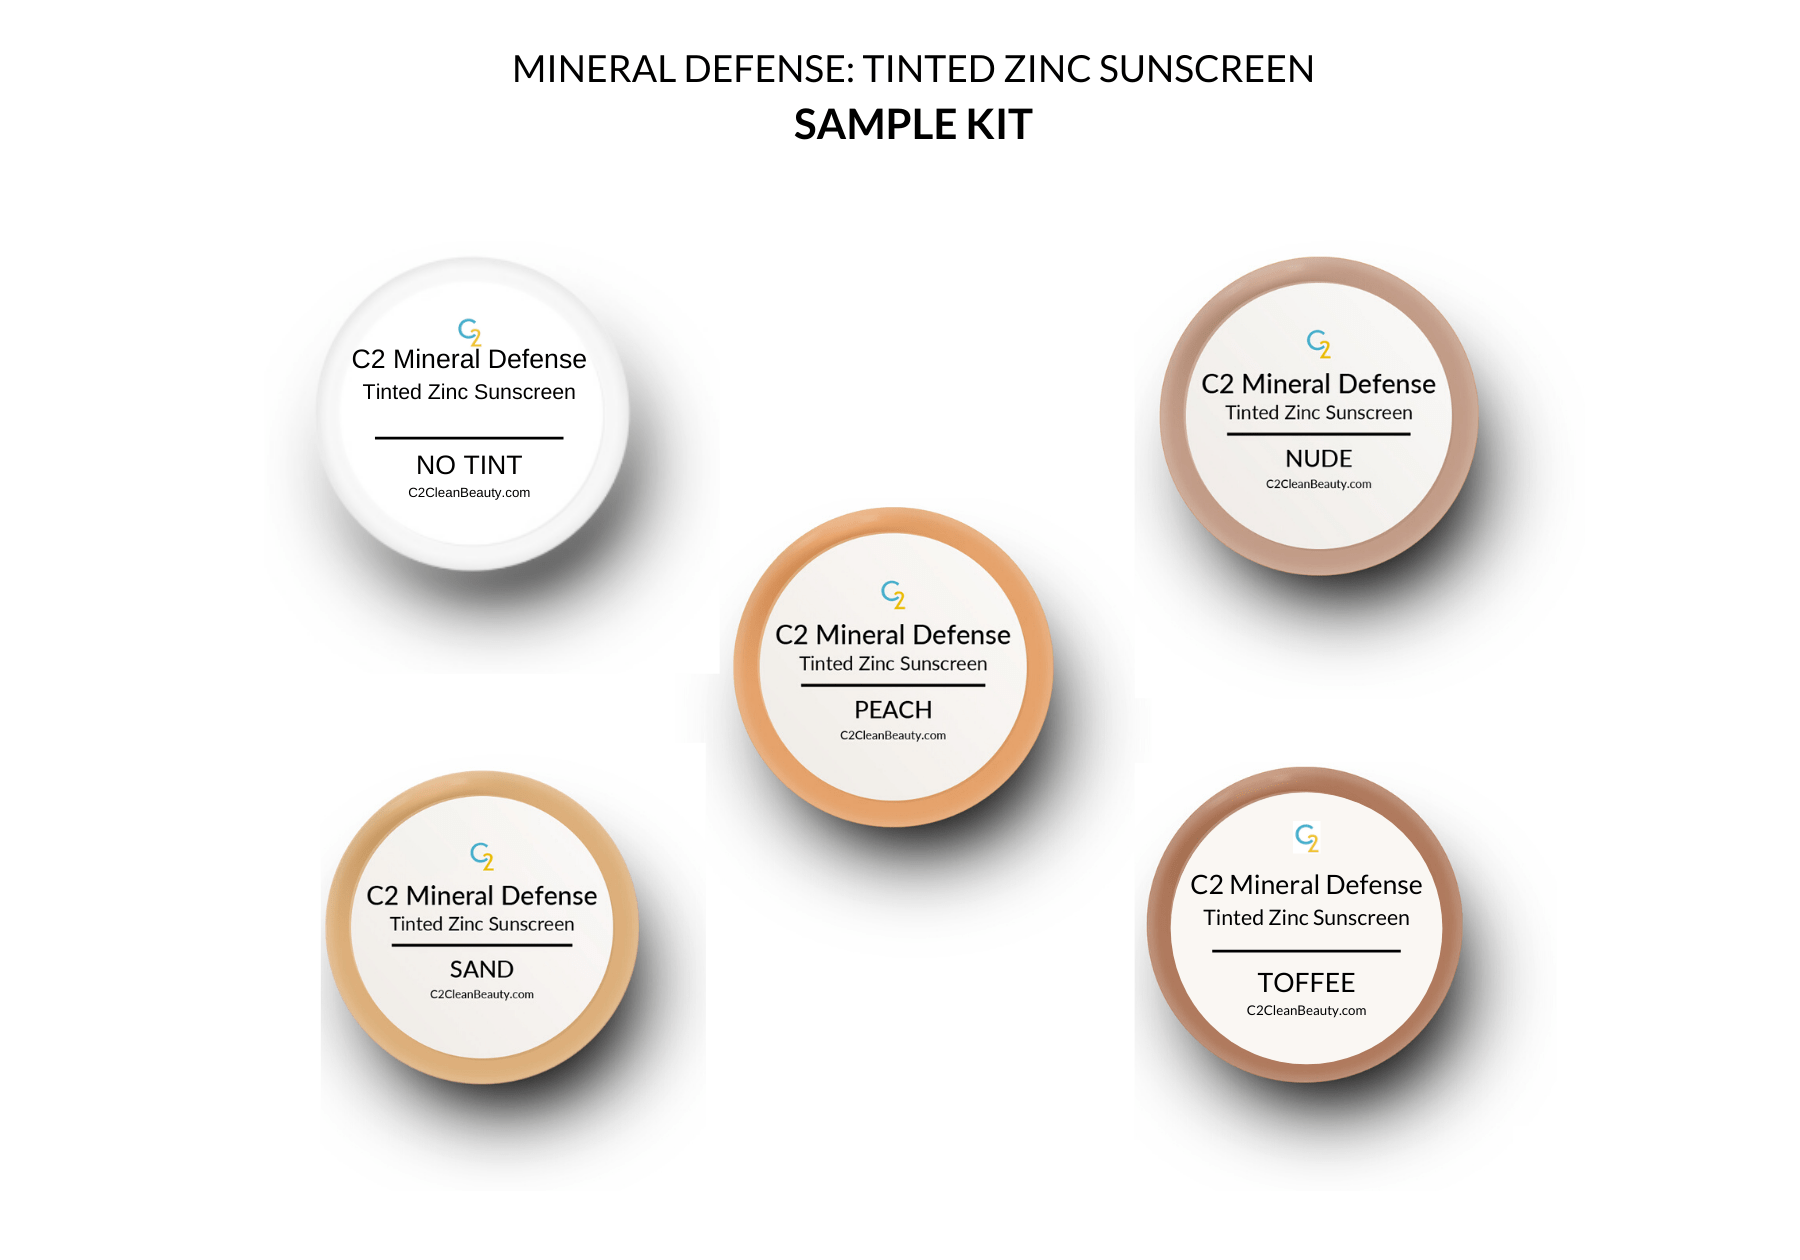 New Mineral Defense: Tinted Zinc Sunscreen